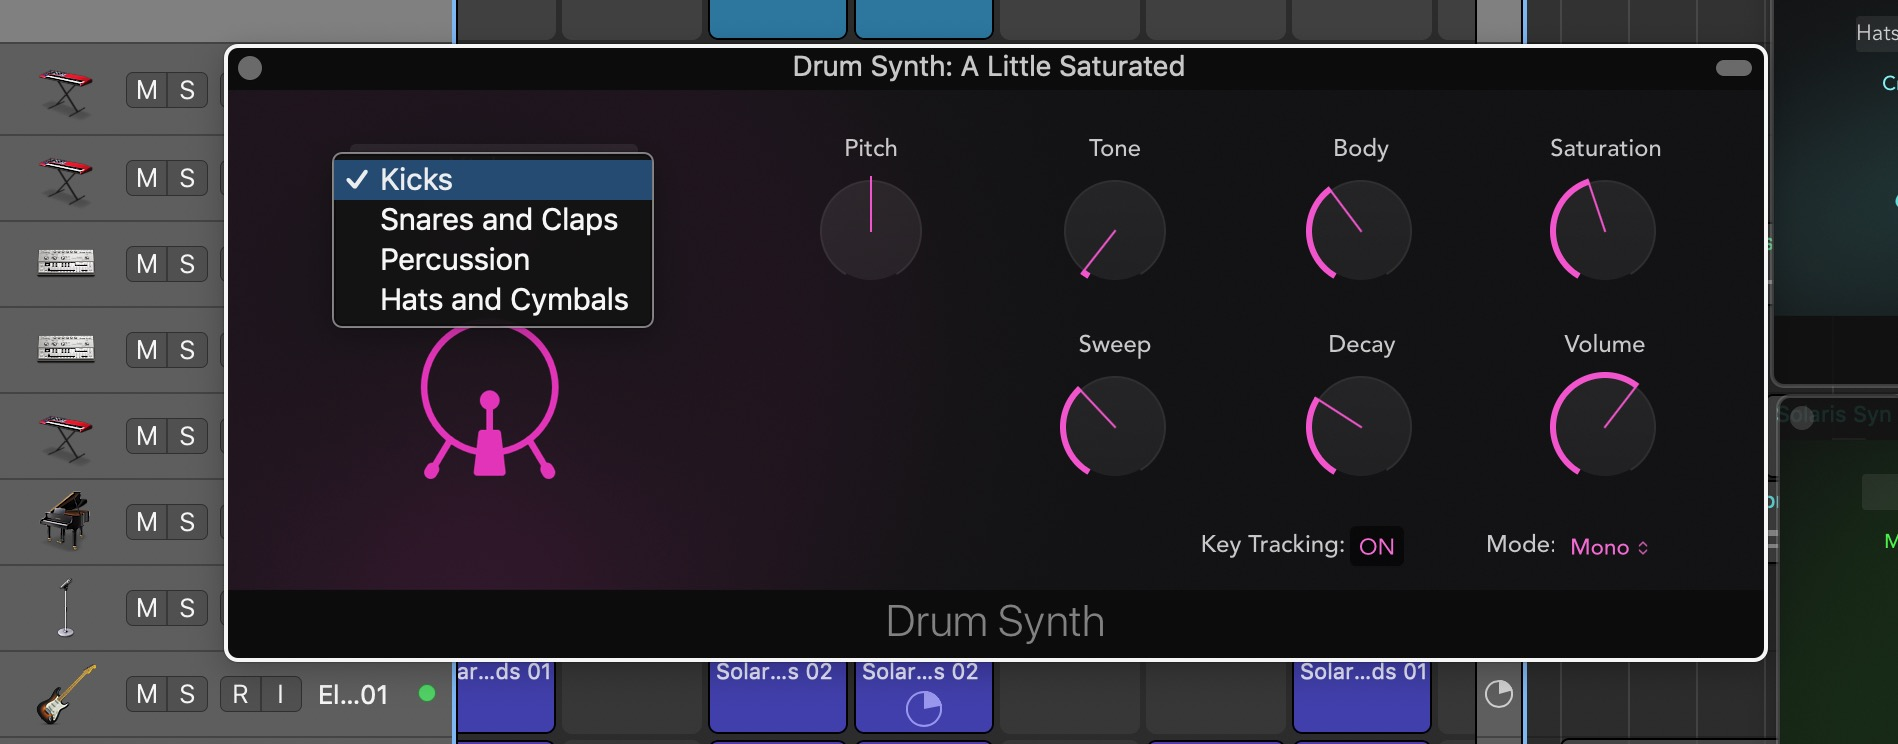 Drum Synth Logic Pro X categories